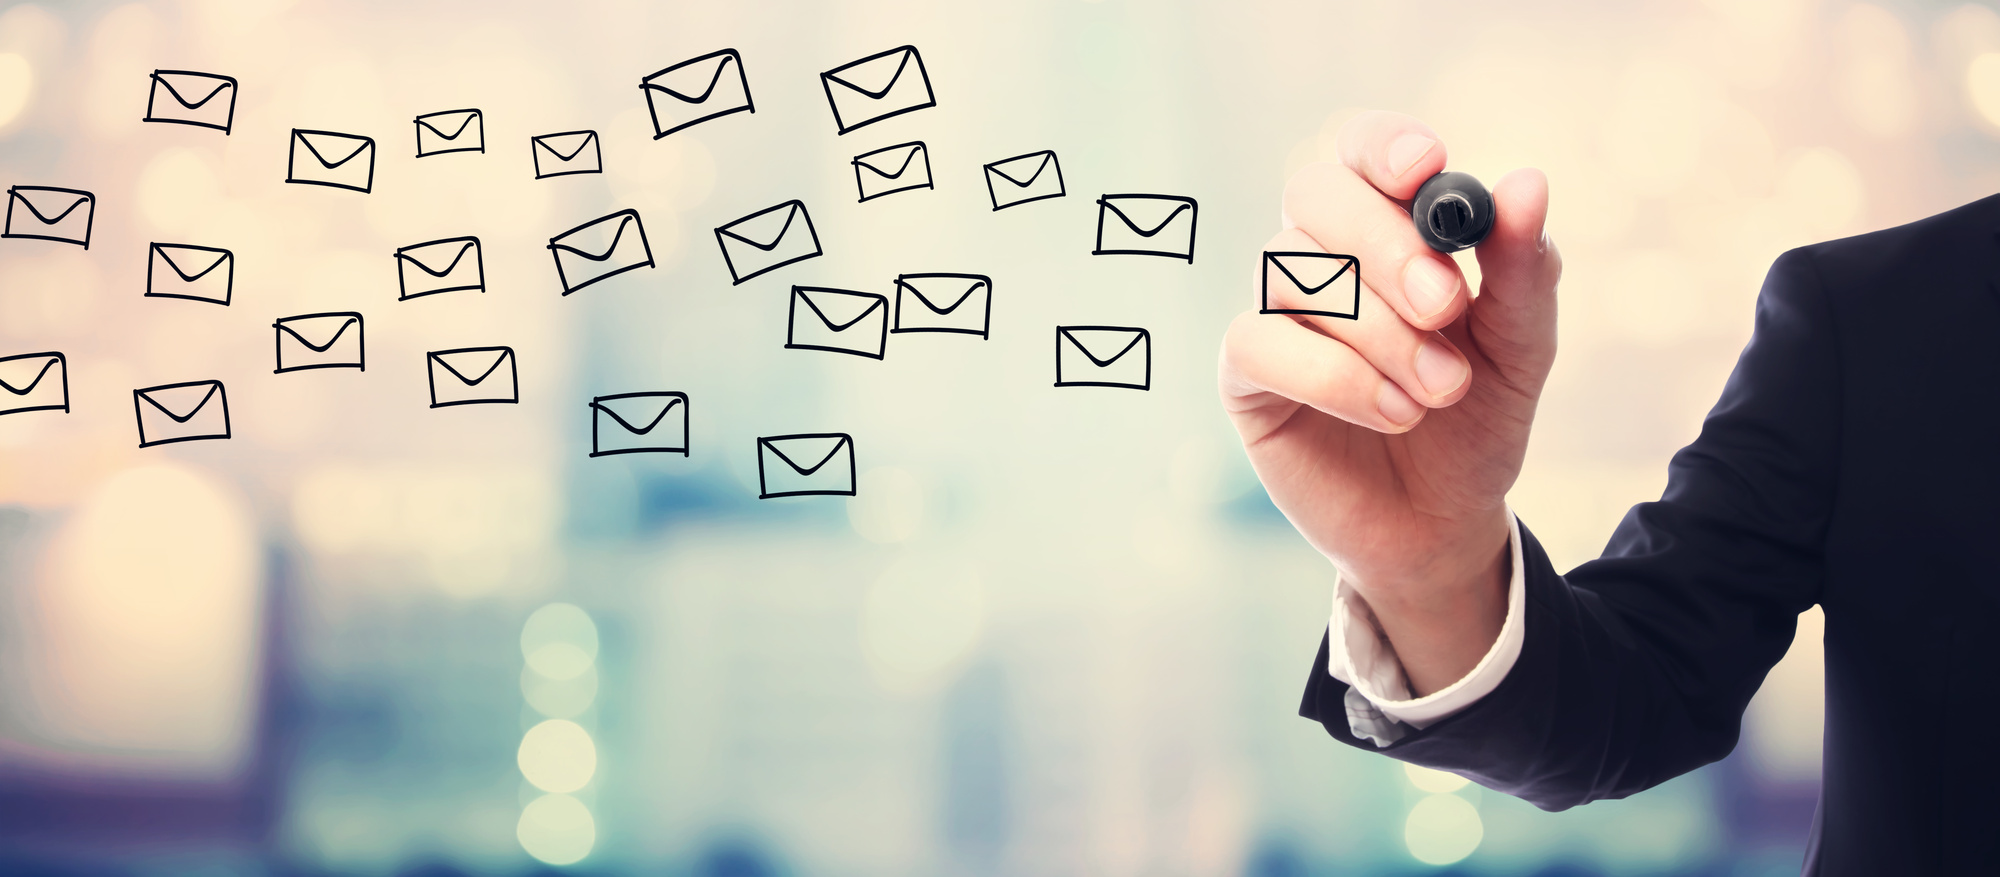 How to Build an Email Marketing List